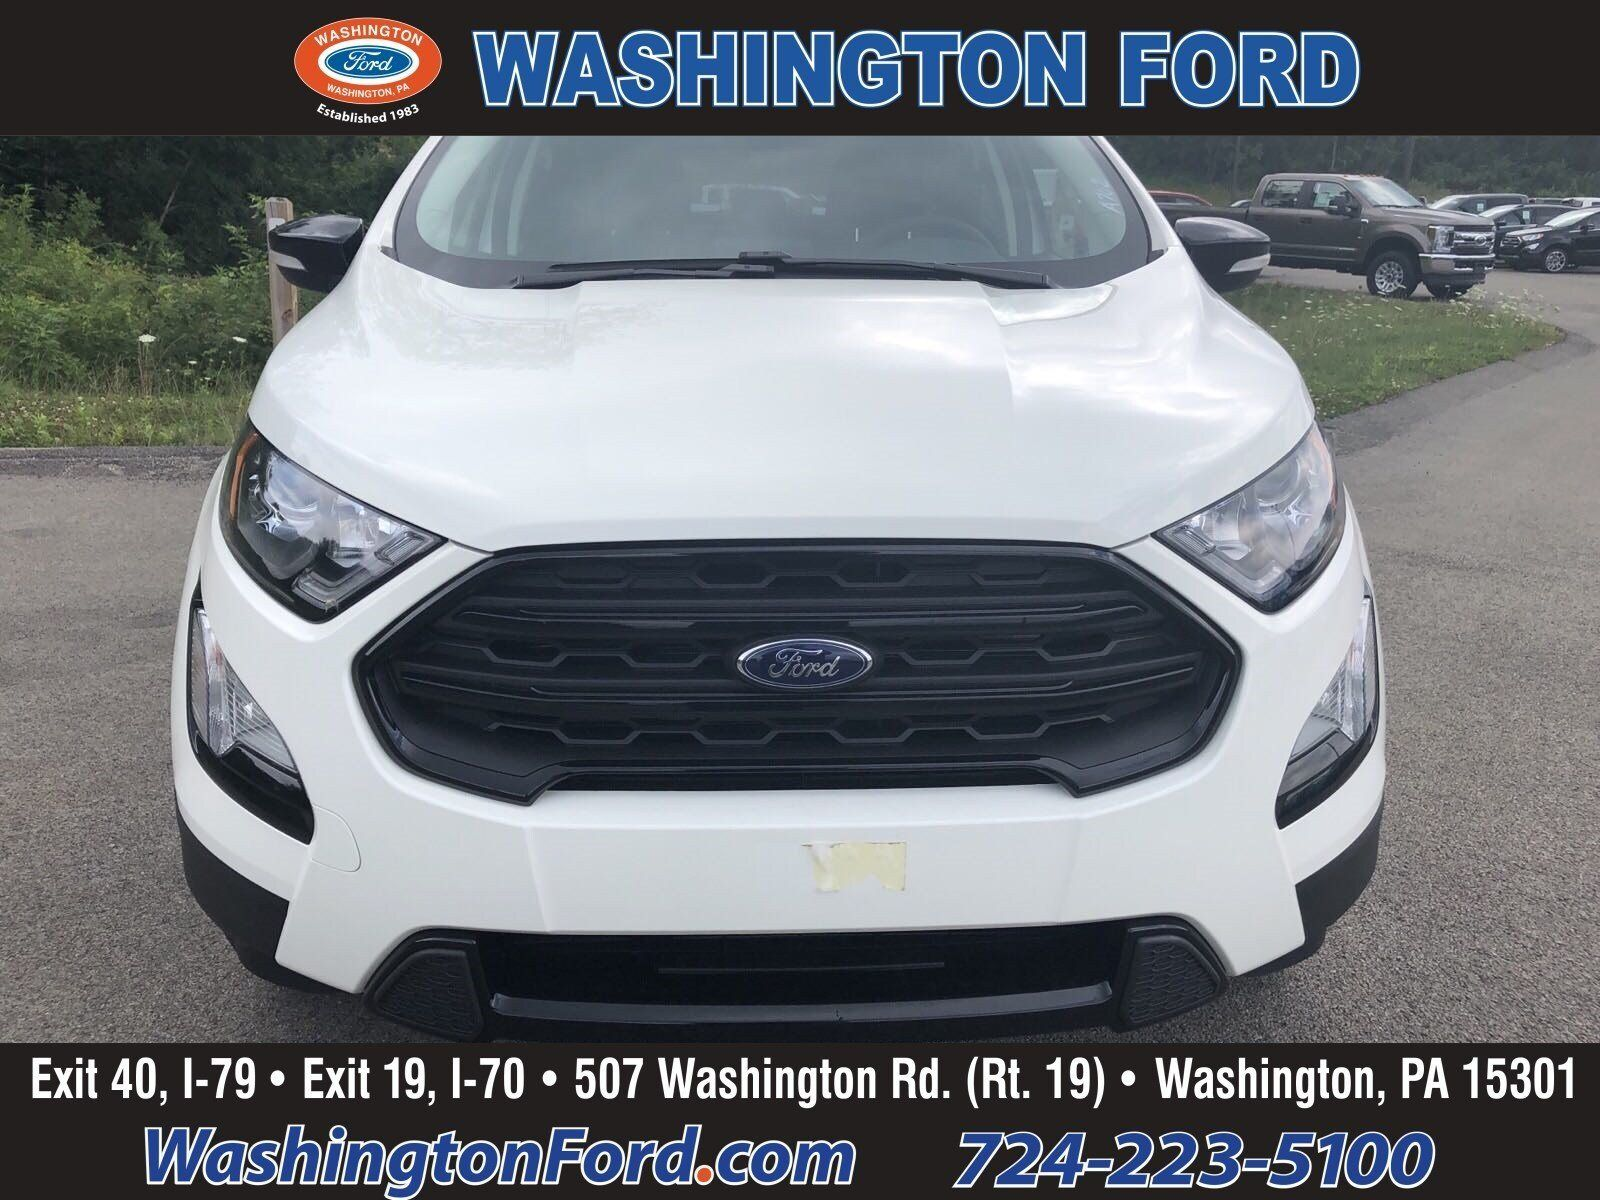 2020 ford Ecosport Review in 2020 Ford ecosport, Ford